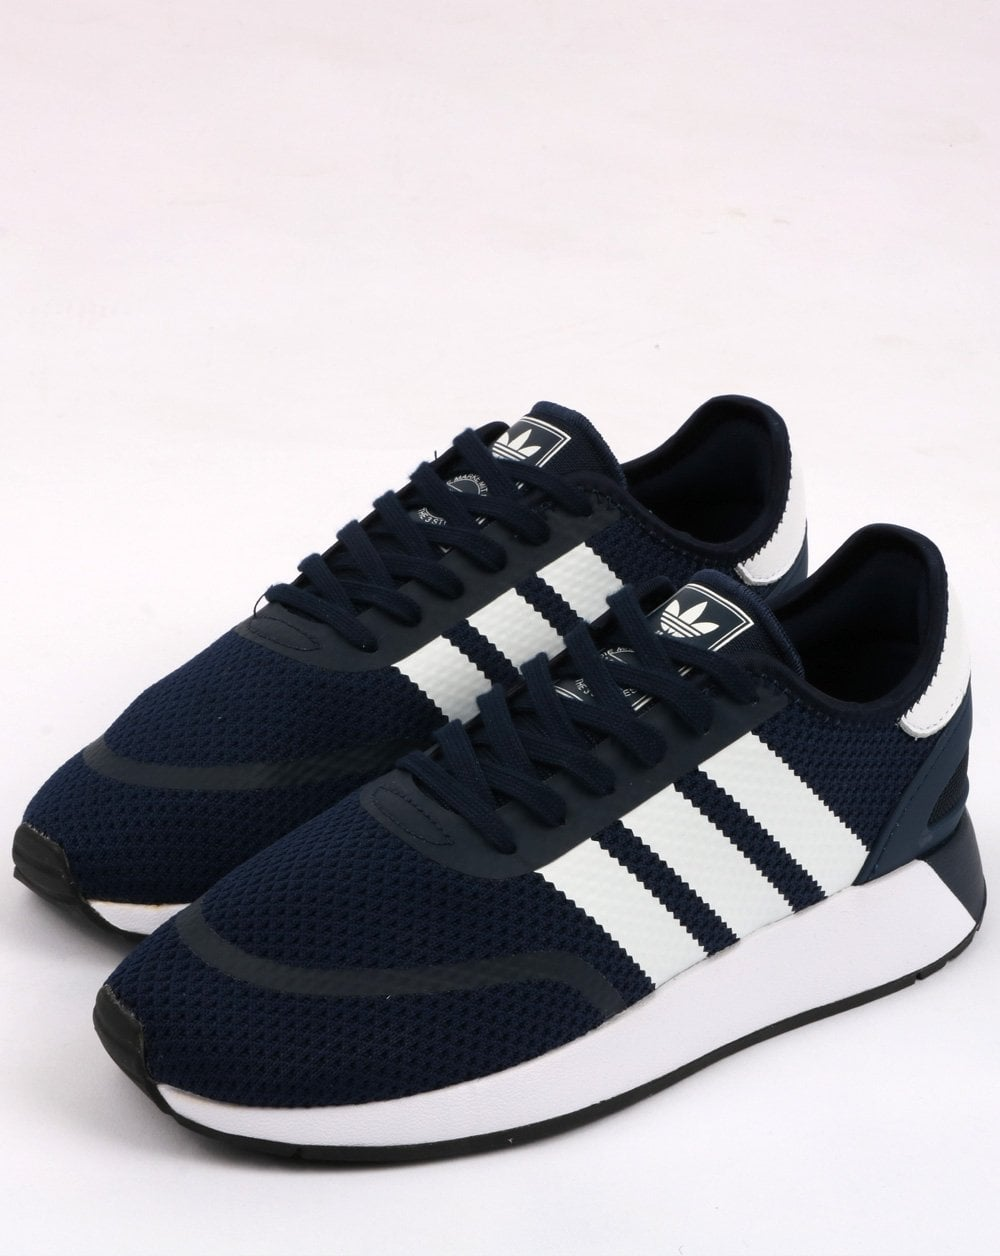 new style 8117c d01da Adidas N-5923 Trainers Collegiate Navy white